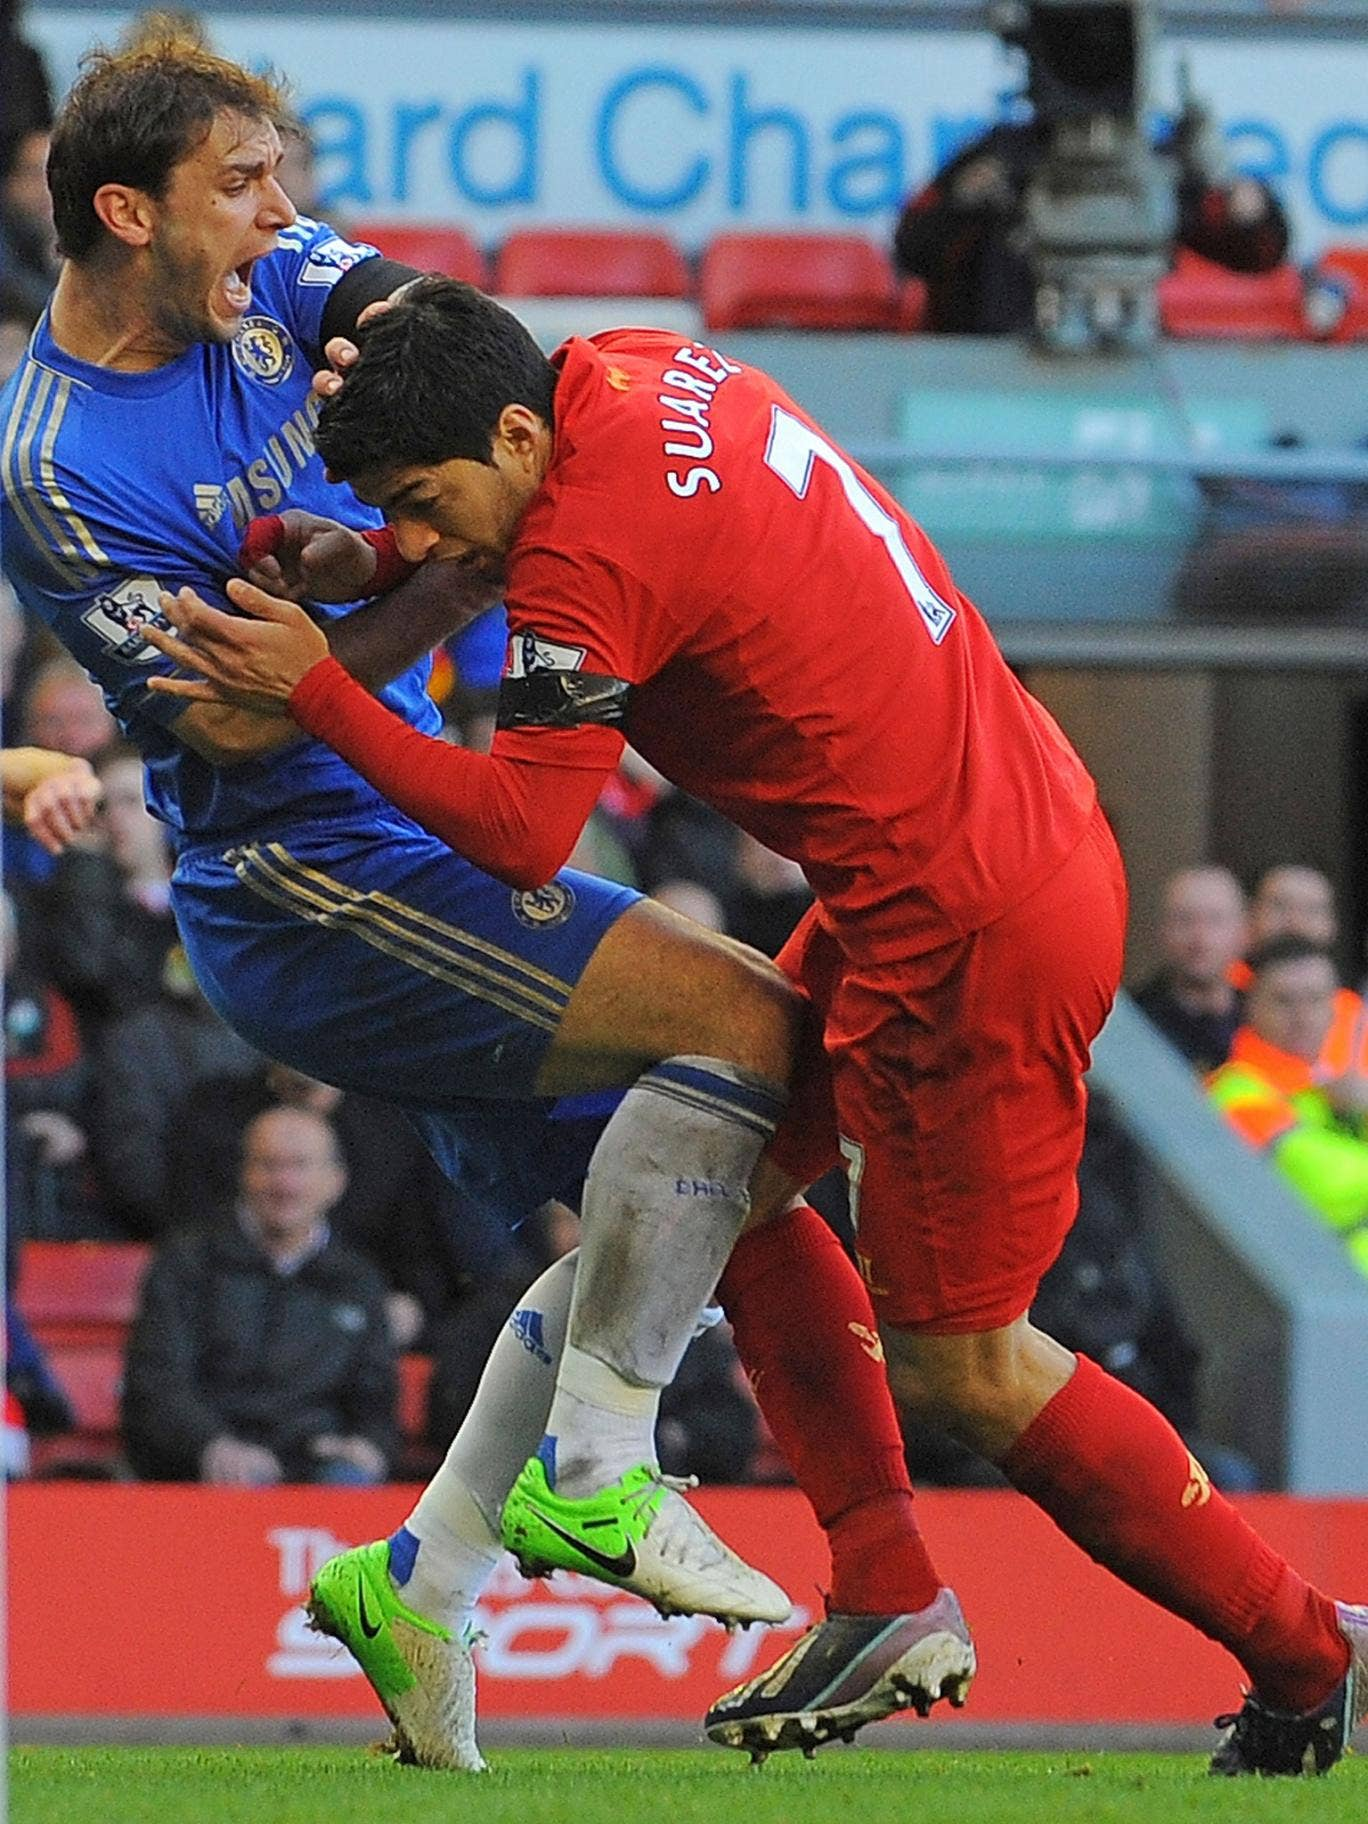 Despite James Lawton's plea following the Olympics the season featured unsavoury incidents such as Luis Suarez's attack on Branislav Ivanovic